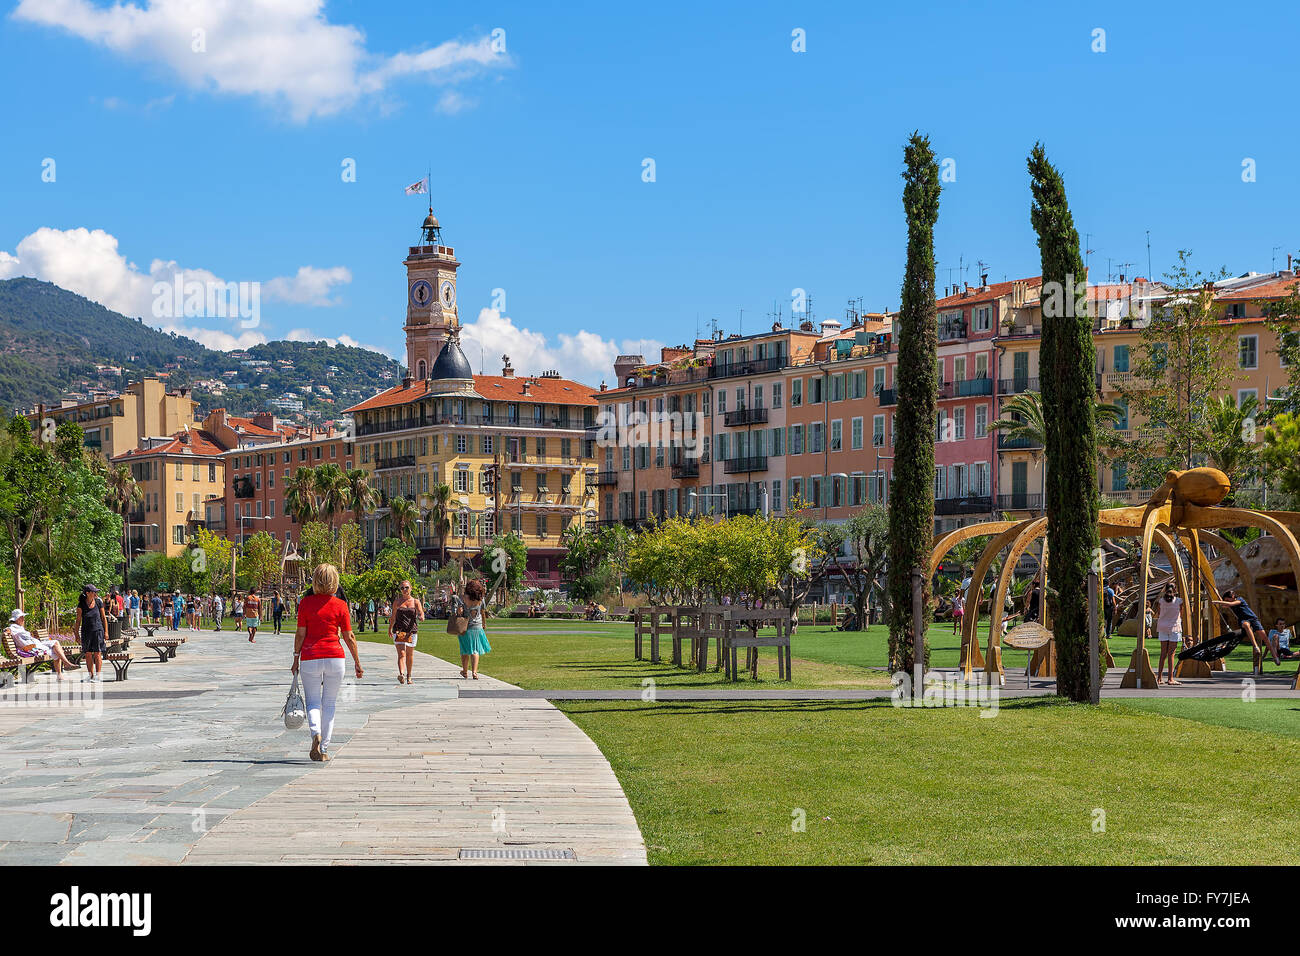 People at Promenade du Paillon in Nice, France. Stock Photo